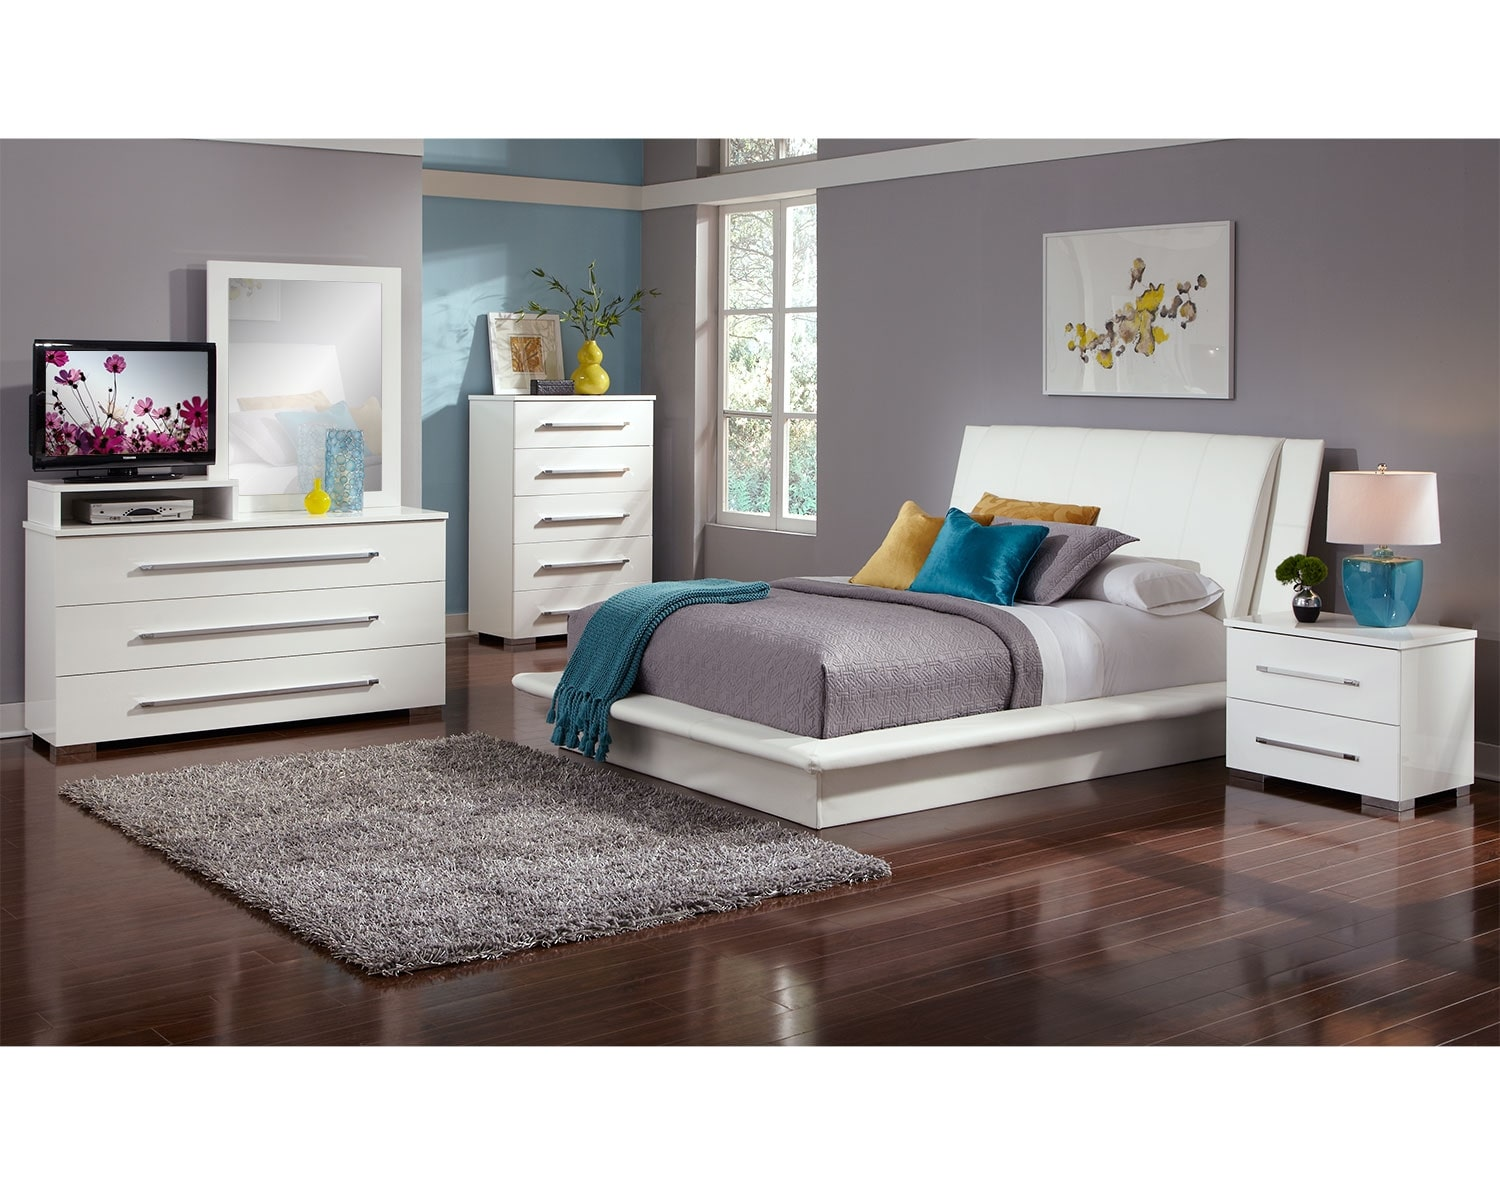 The Dimora Upholstered Collection - White